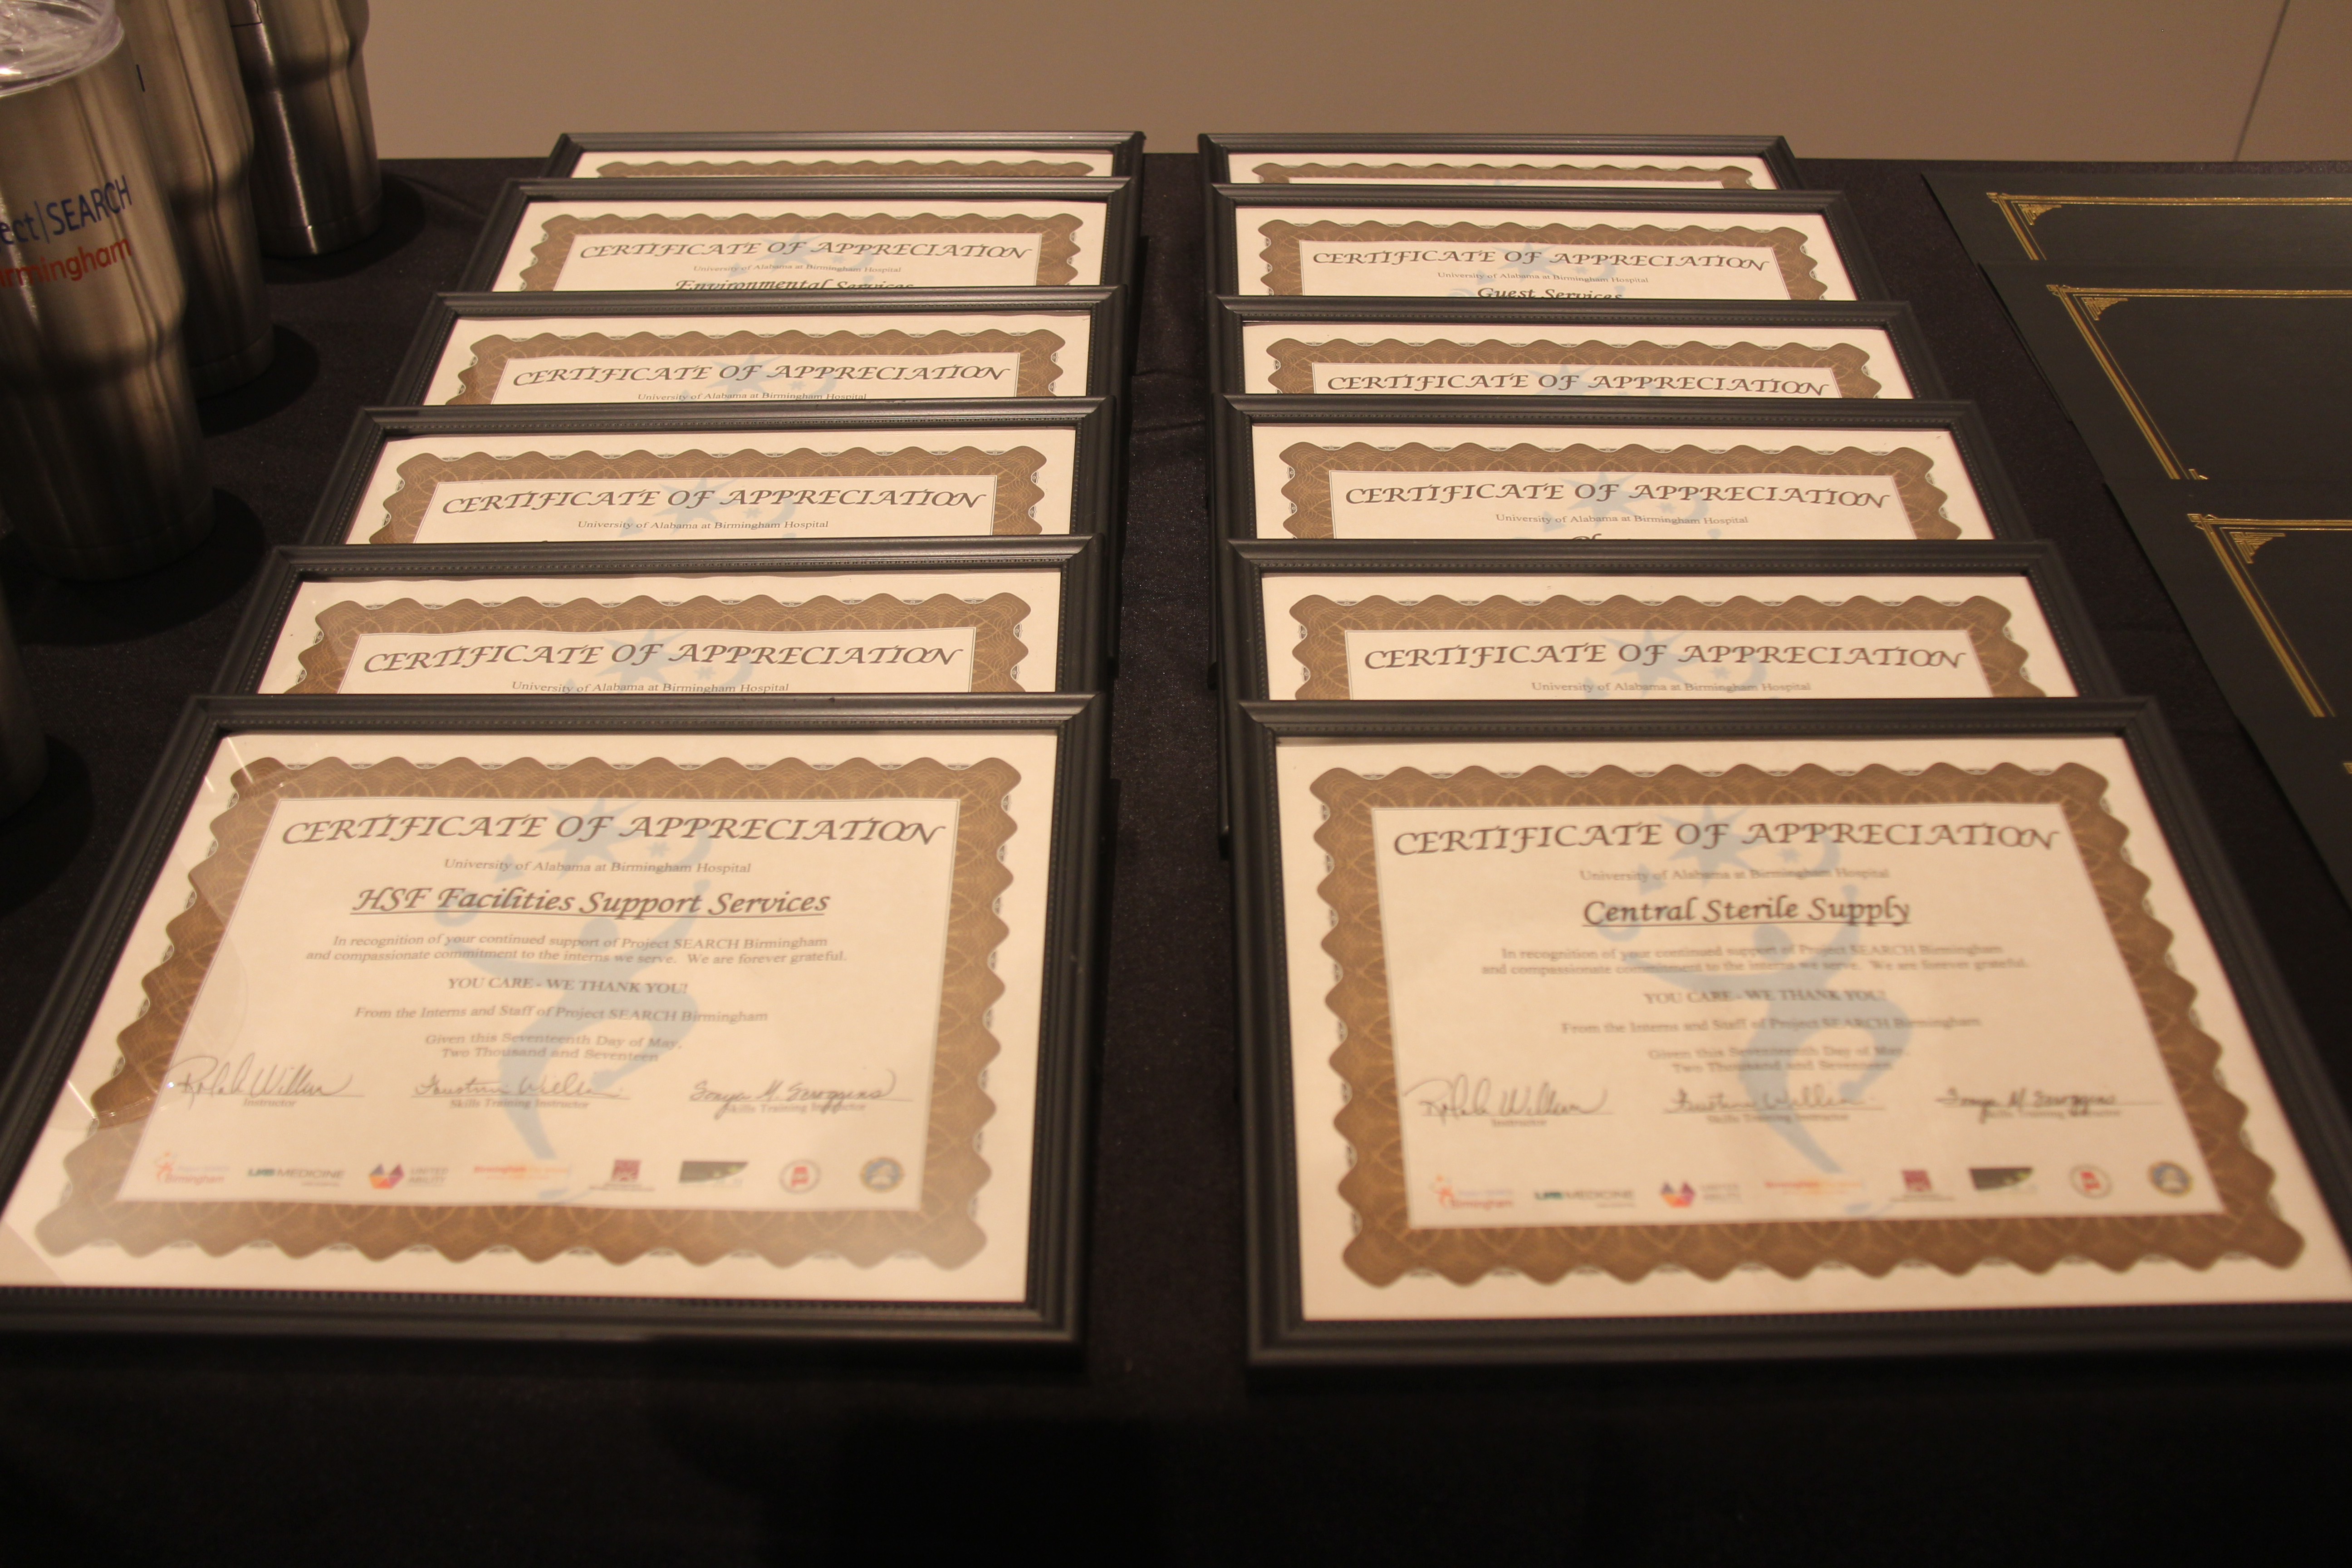 Certificates thanking sponsors and supporters of Project SEARCH in Birmingham were awarded during graduation